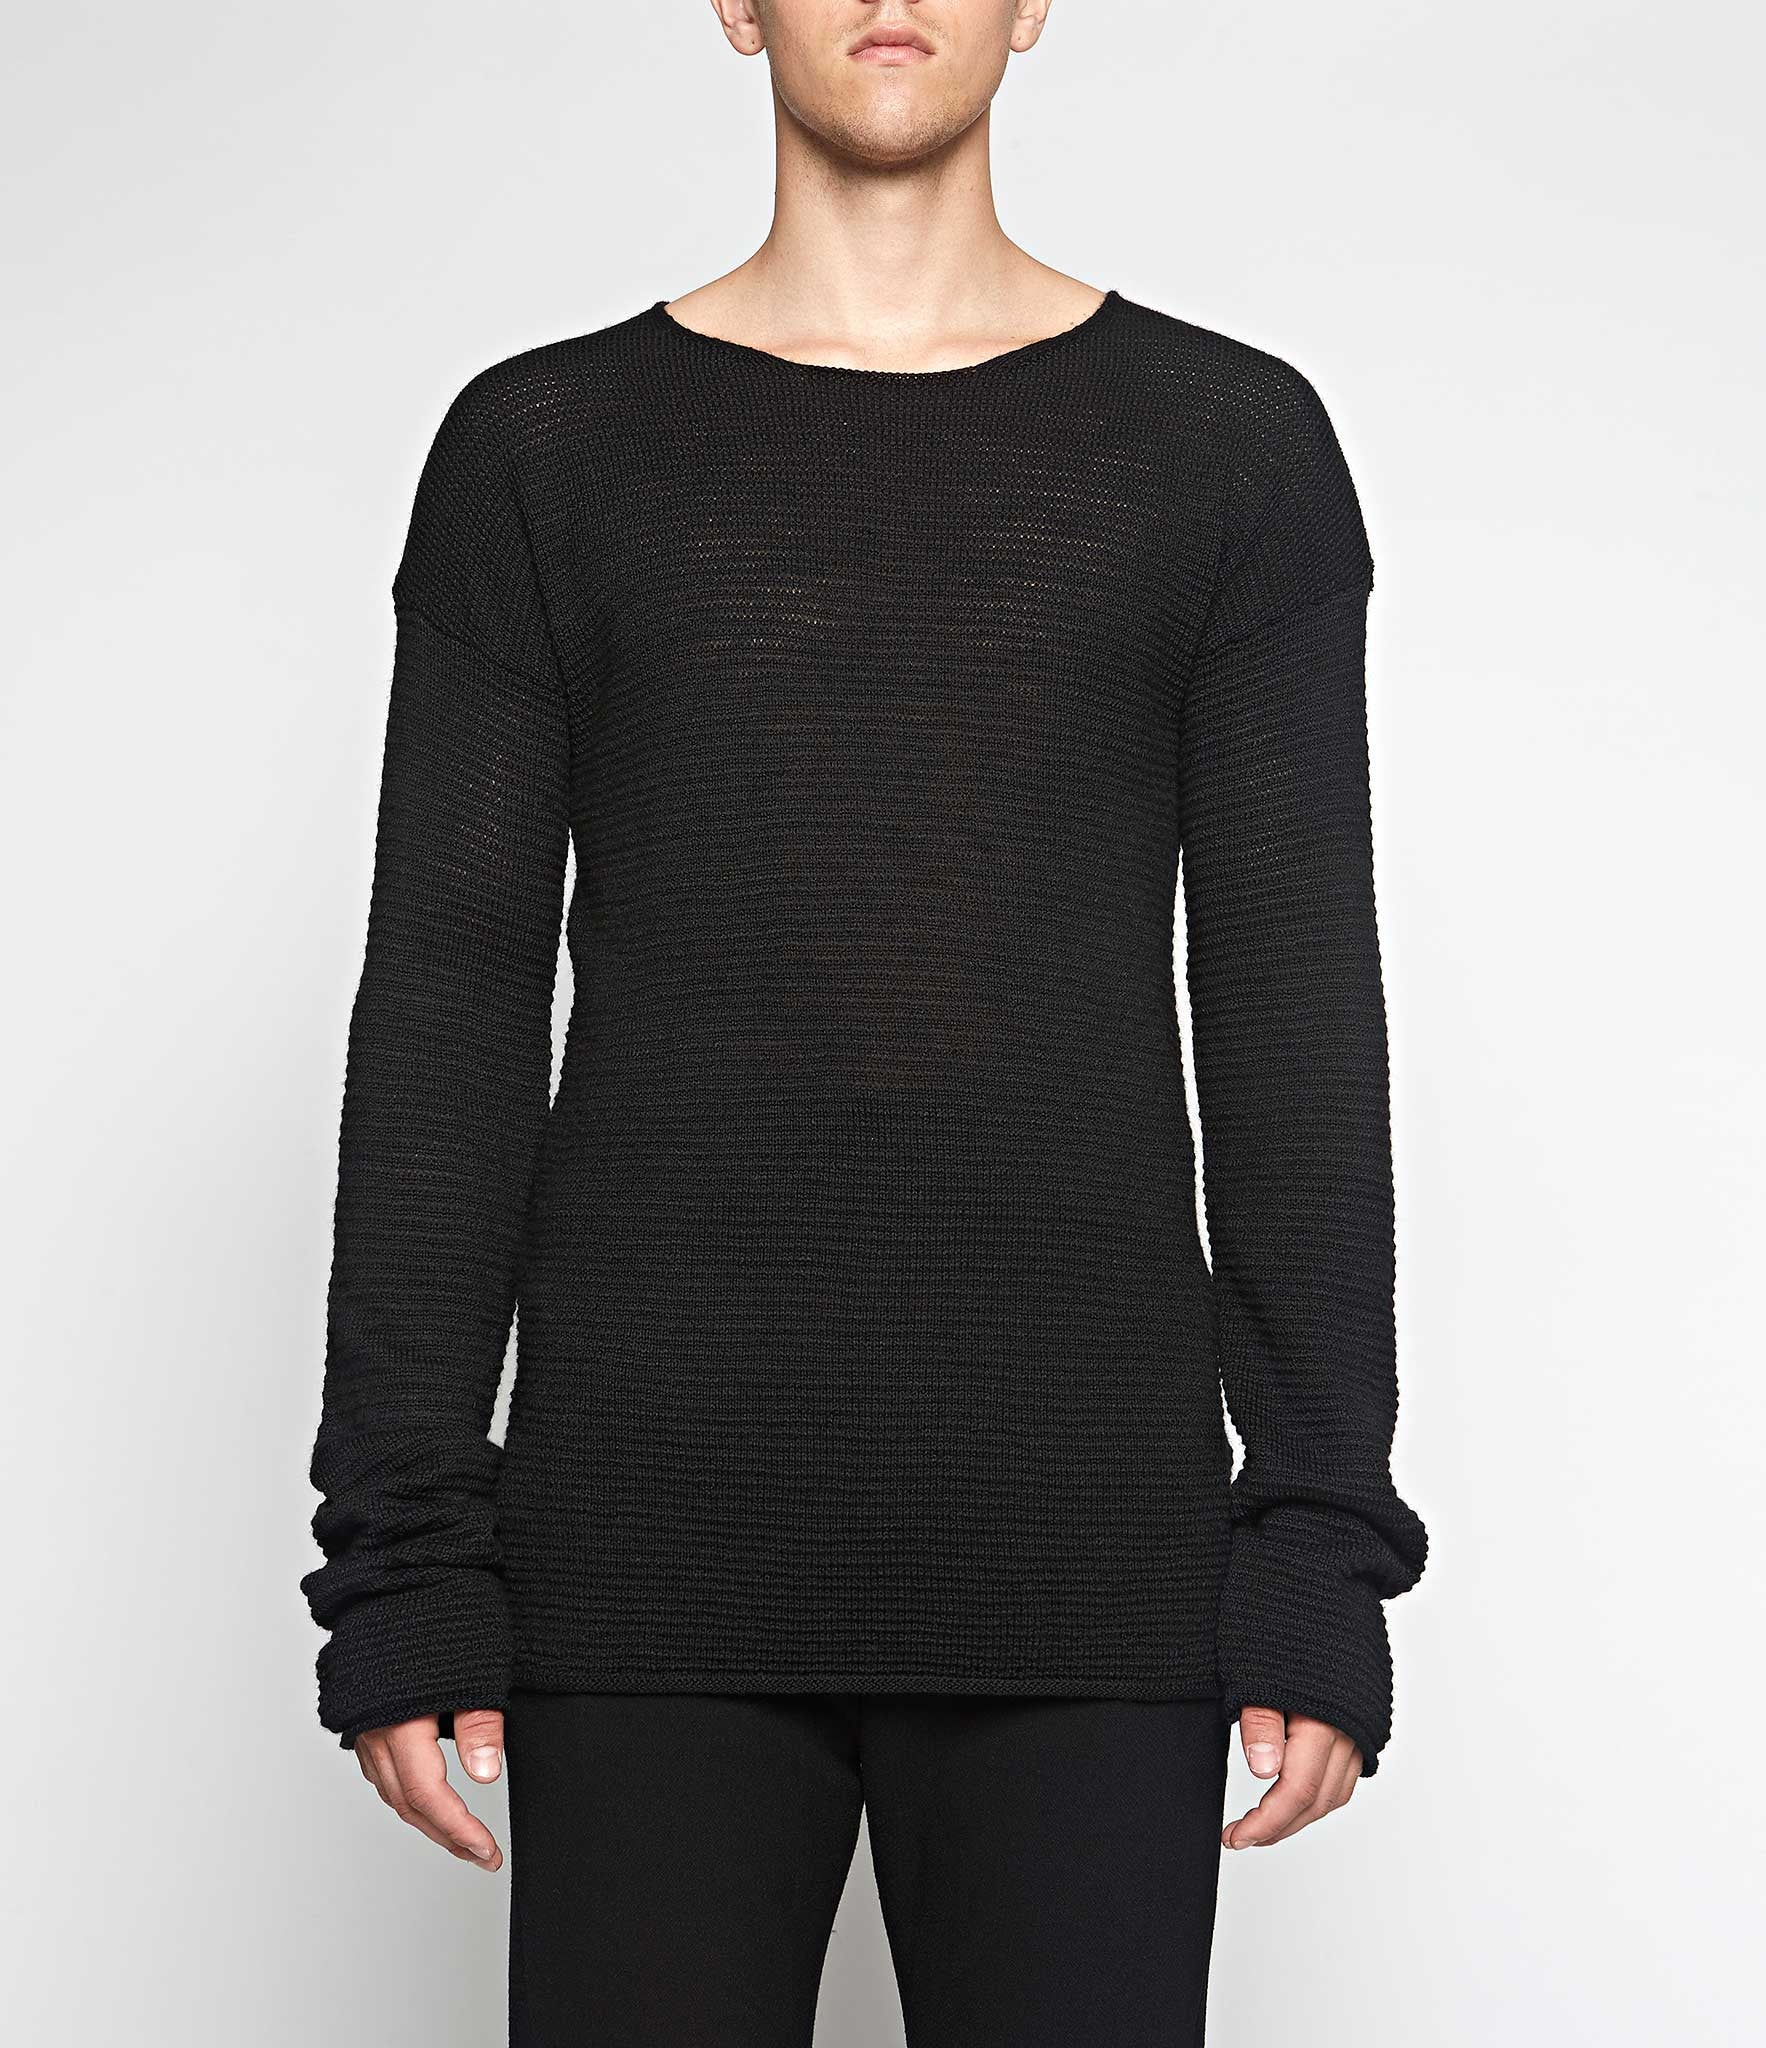 Lost & Found Rooms Black Ribbed Crew Neck Sweater